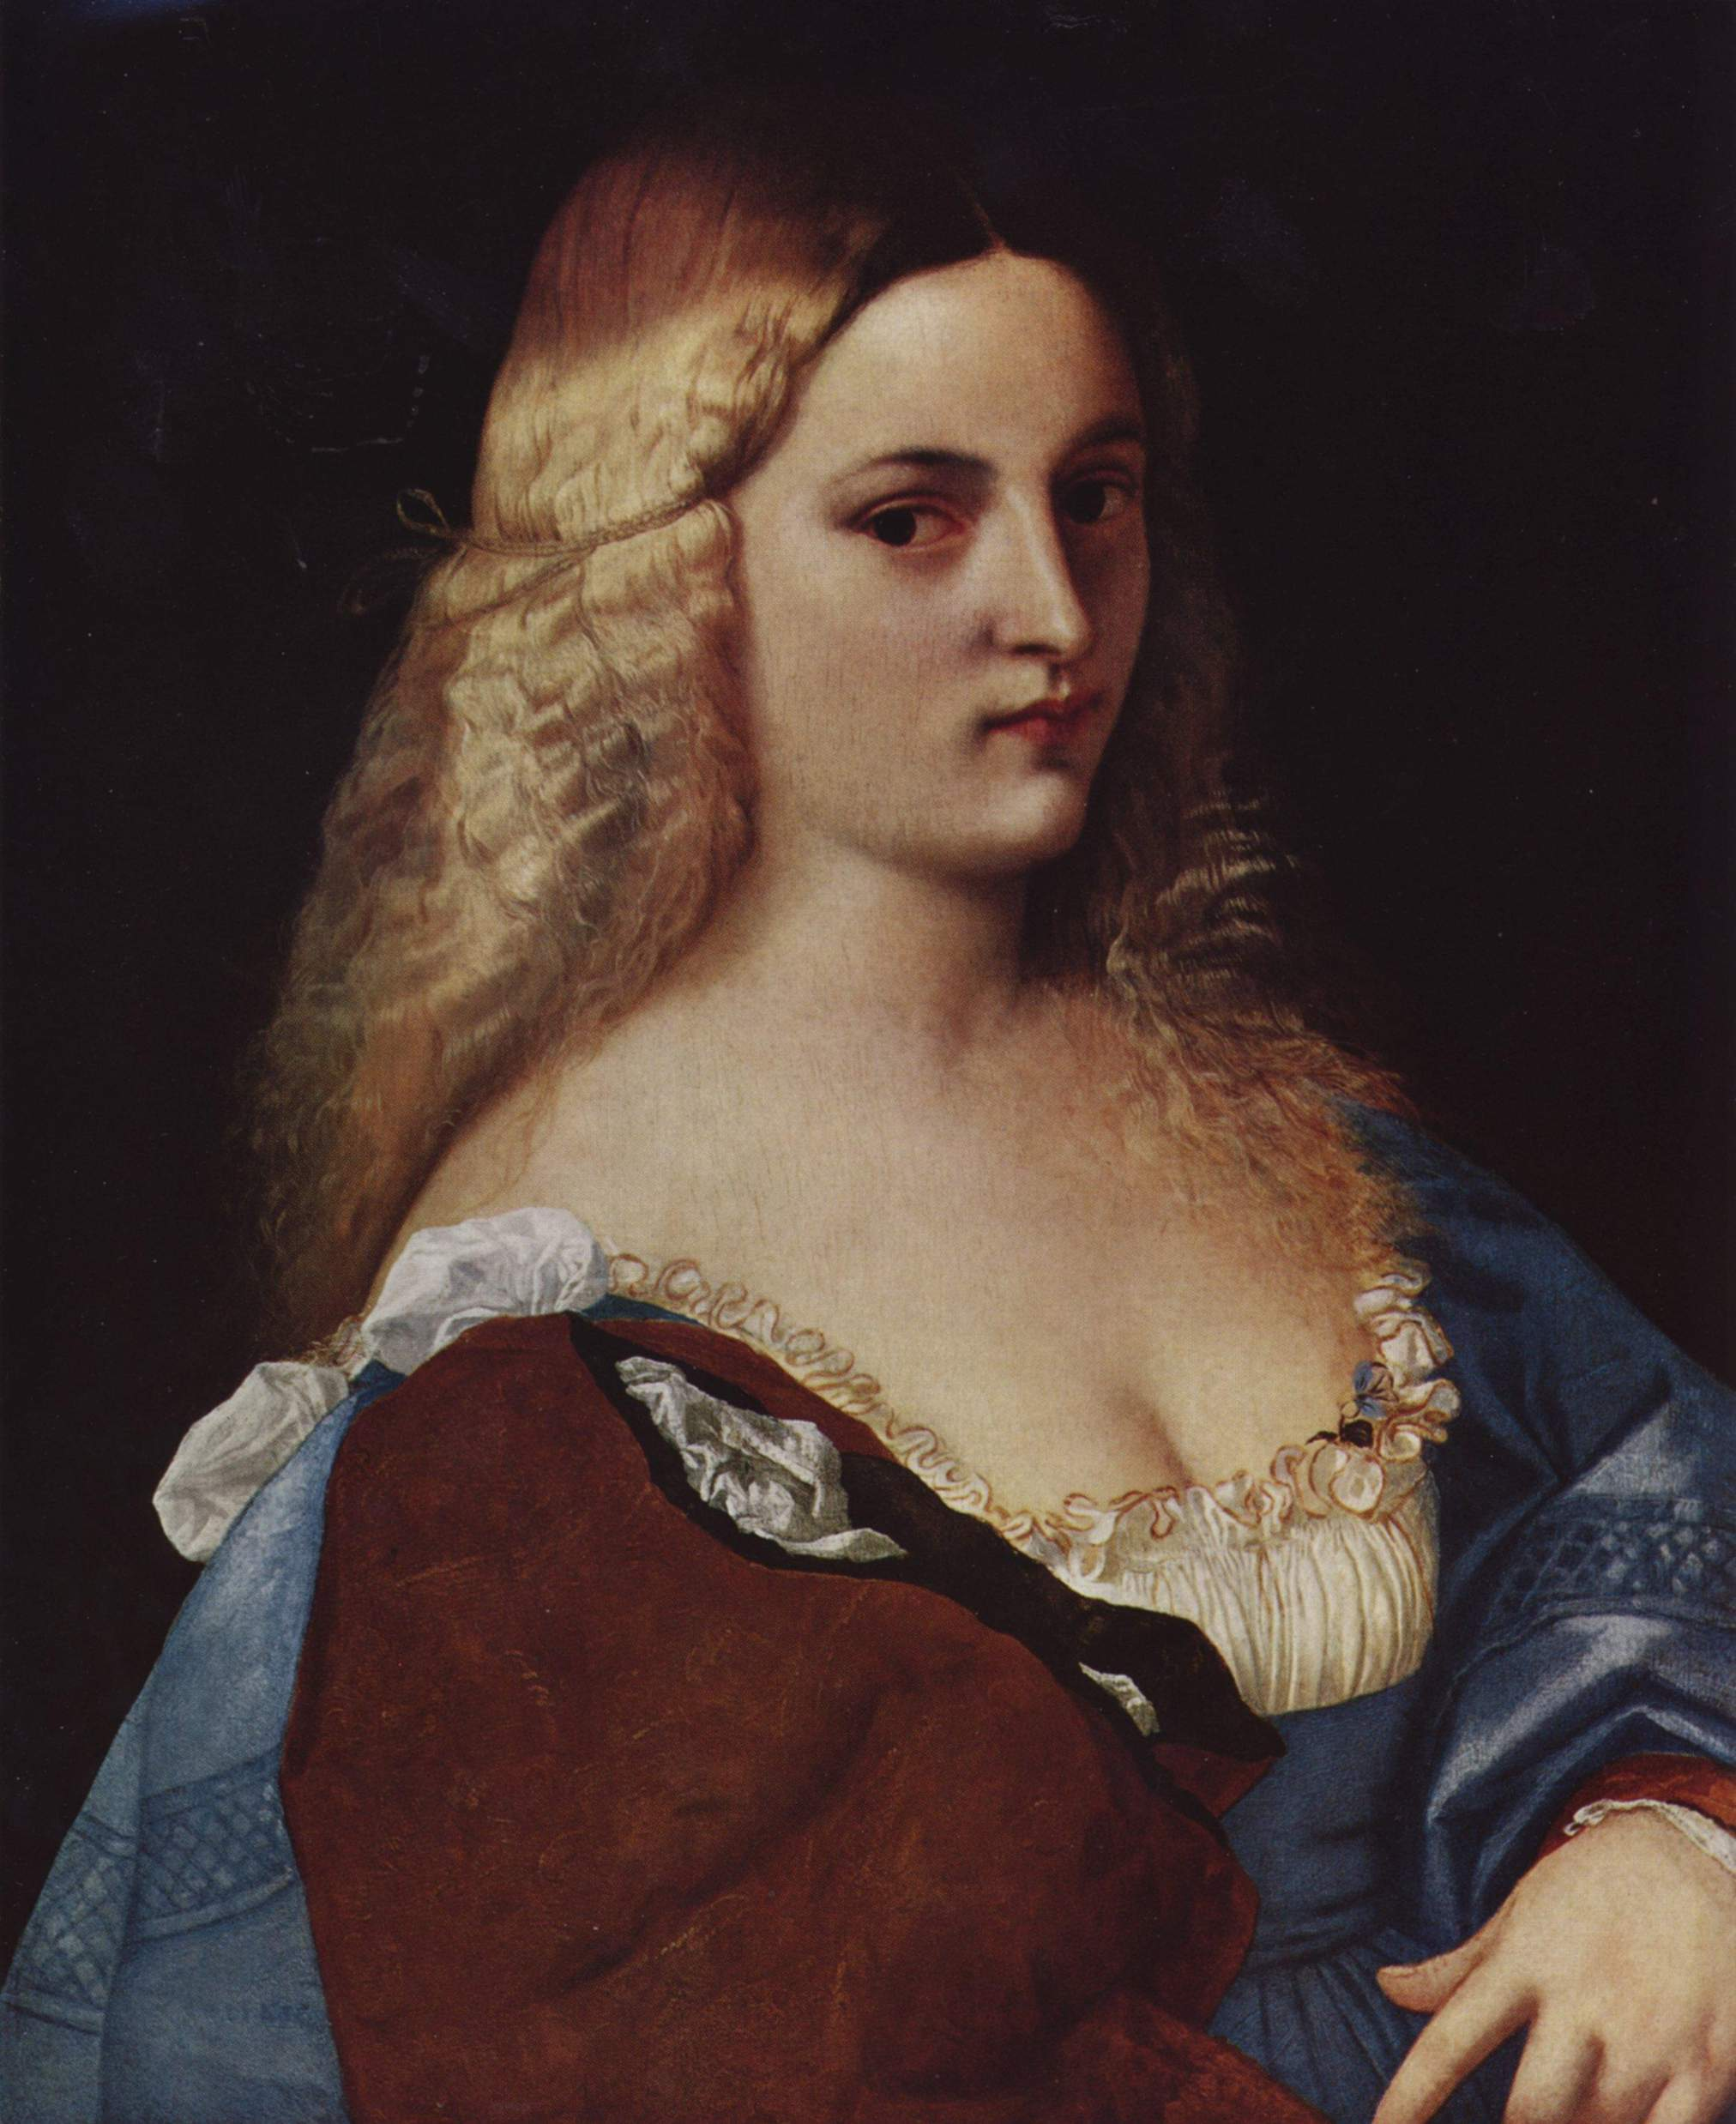 Violante by Palma il Vecchio (c. 1520), at the Kunsthistorisches Museum, Vienna.